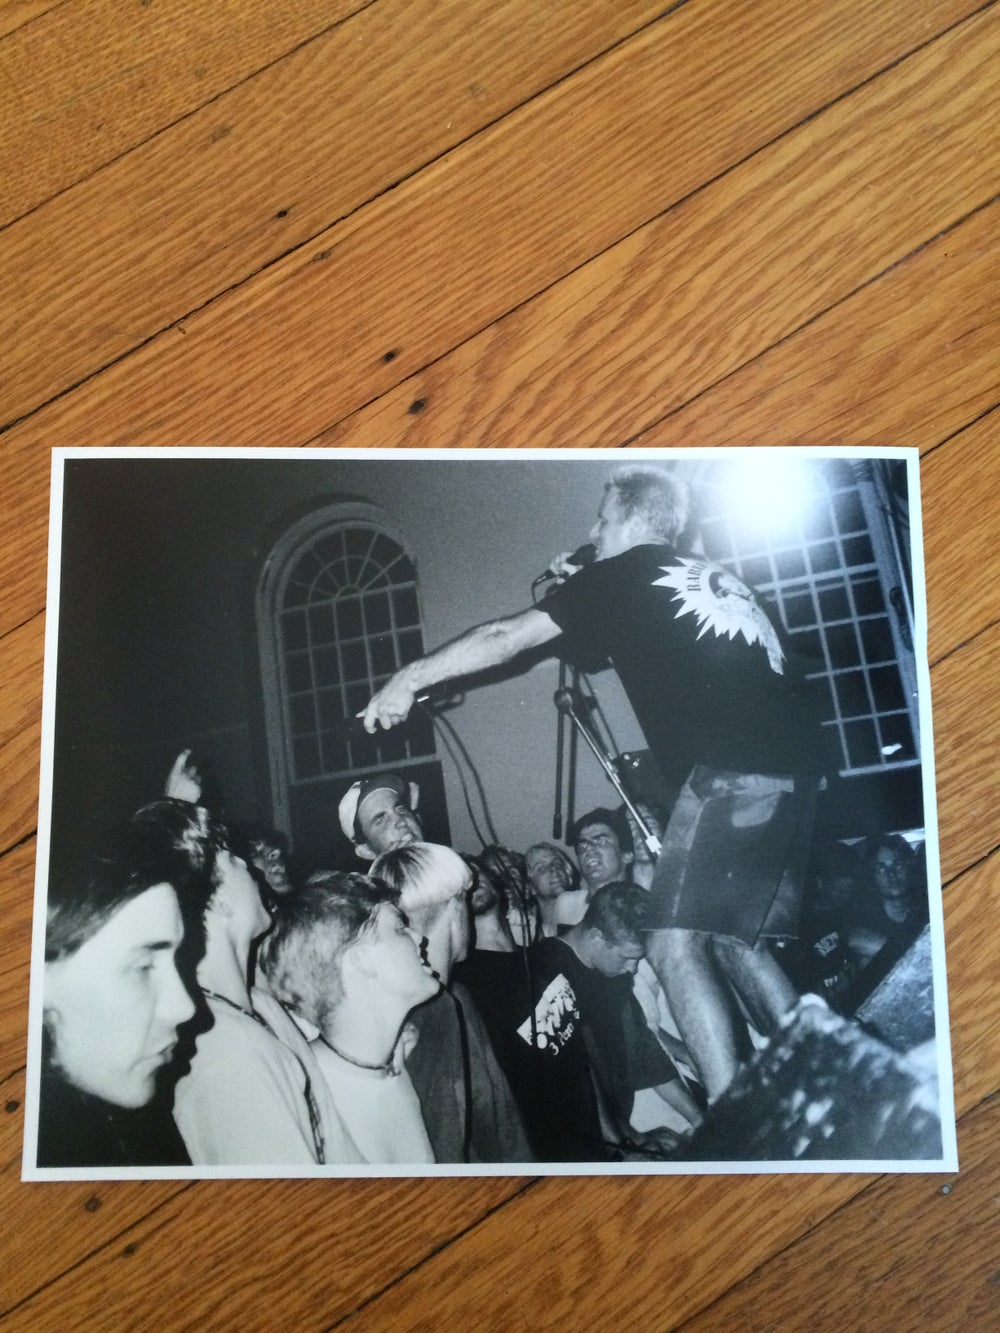 Image of Verbal Assault 8x10 Prints - Other SIZES AVAIL. Just ASK!